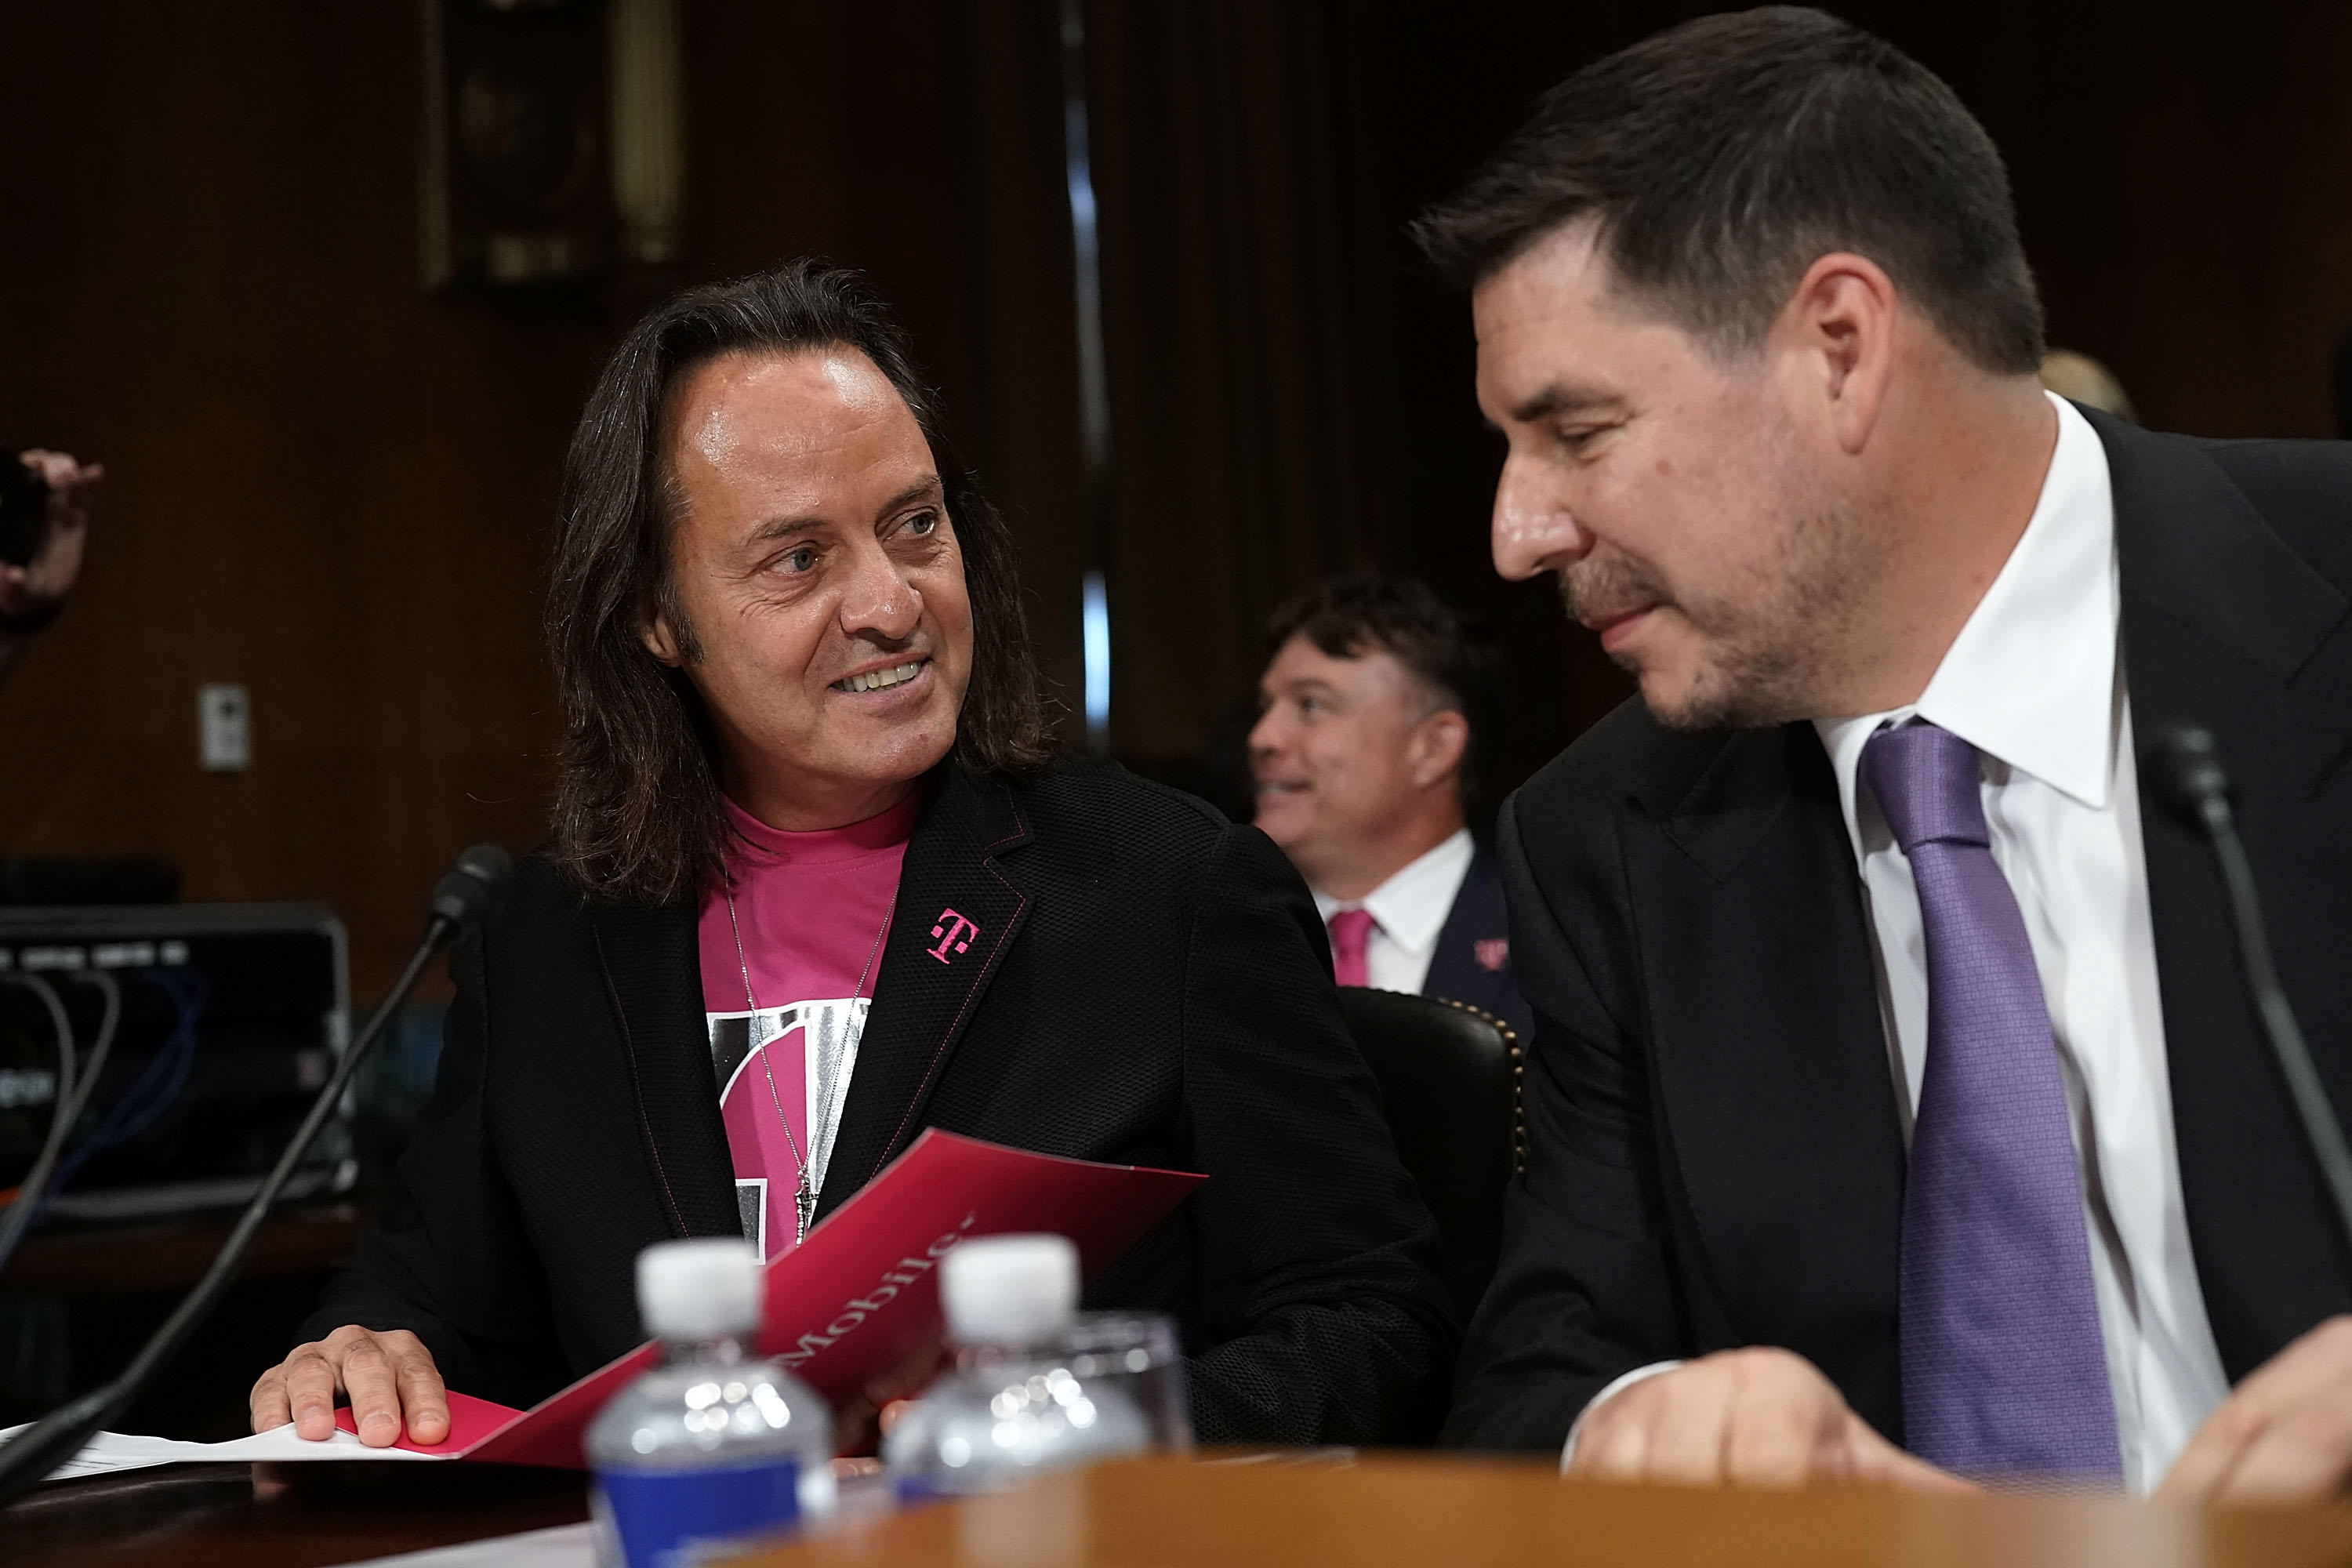 CEOs Of Sprint And T-Mobile